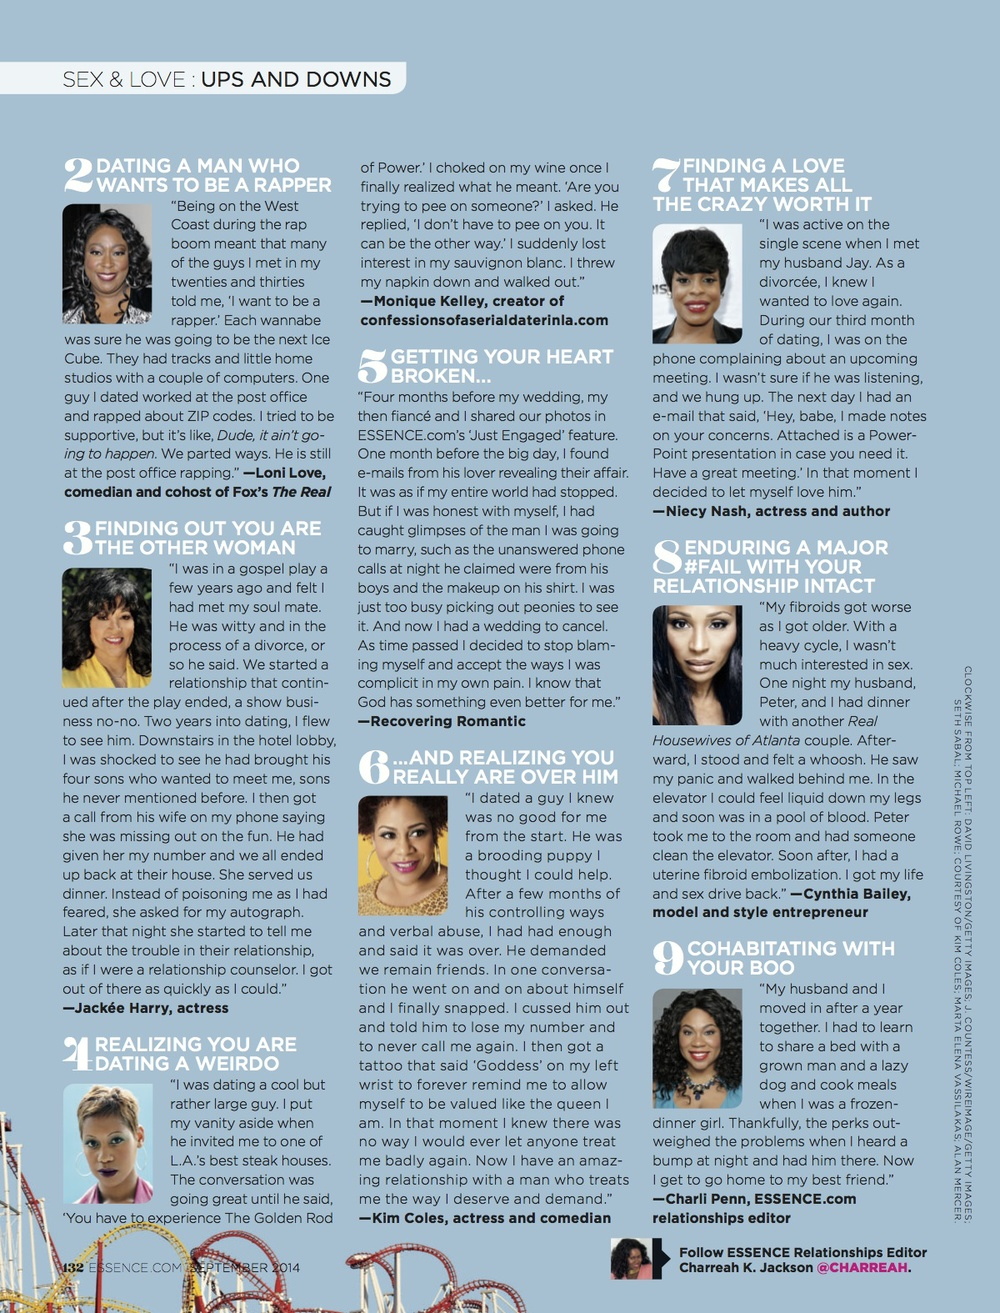 The Relationship Roller Coaster, ESSENCE Sep. 2014